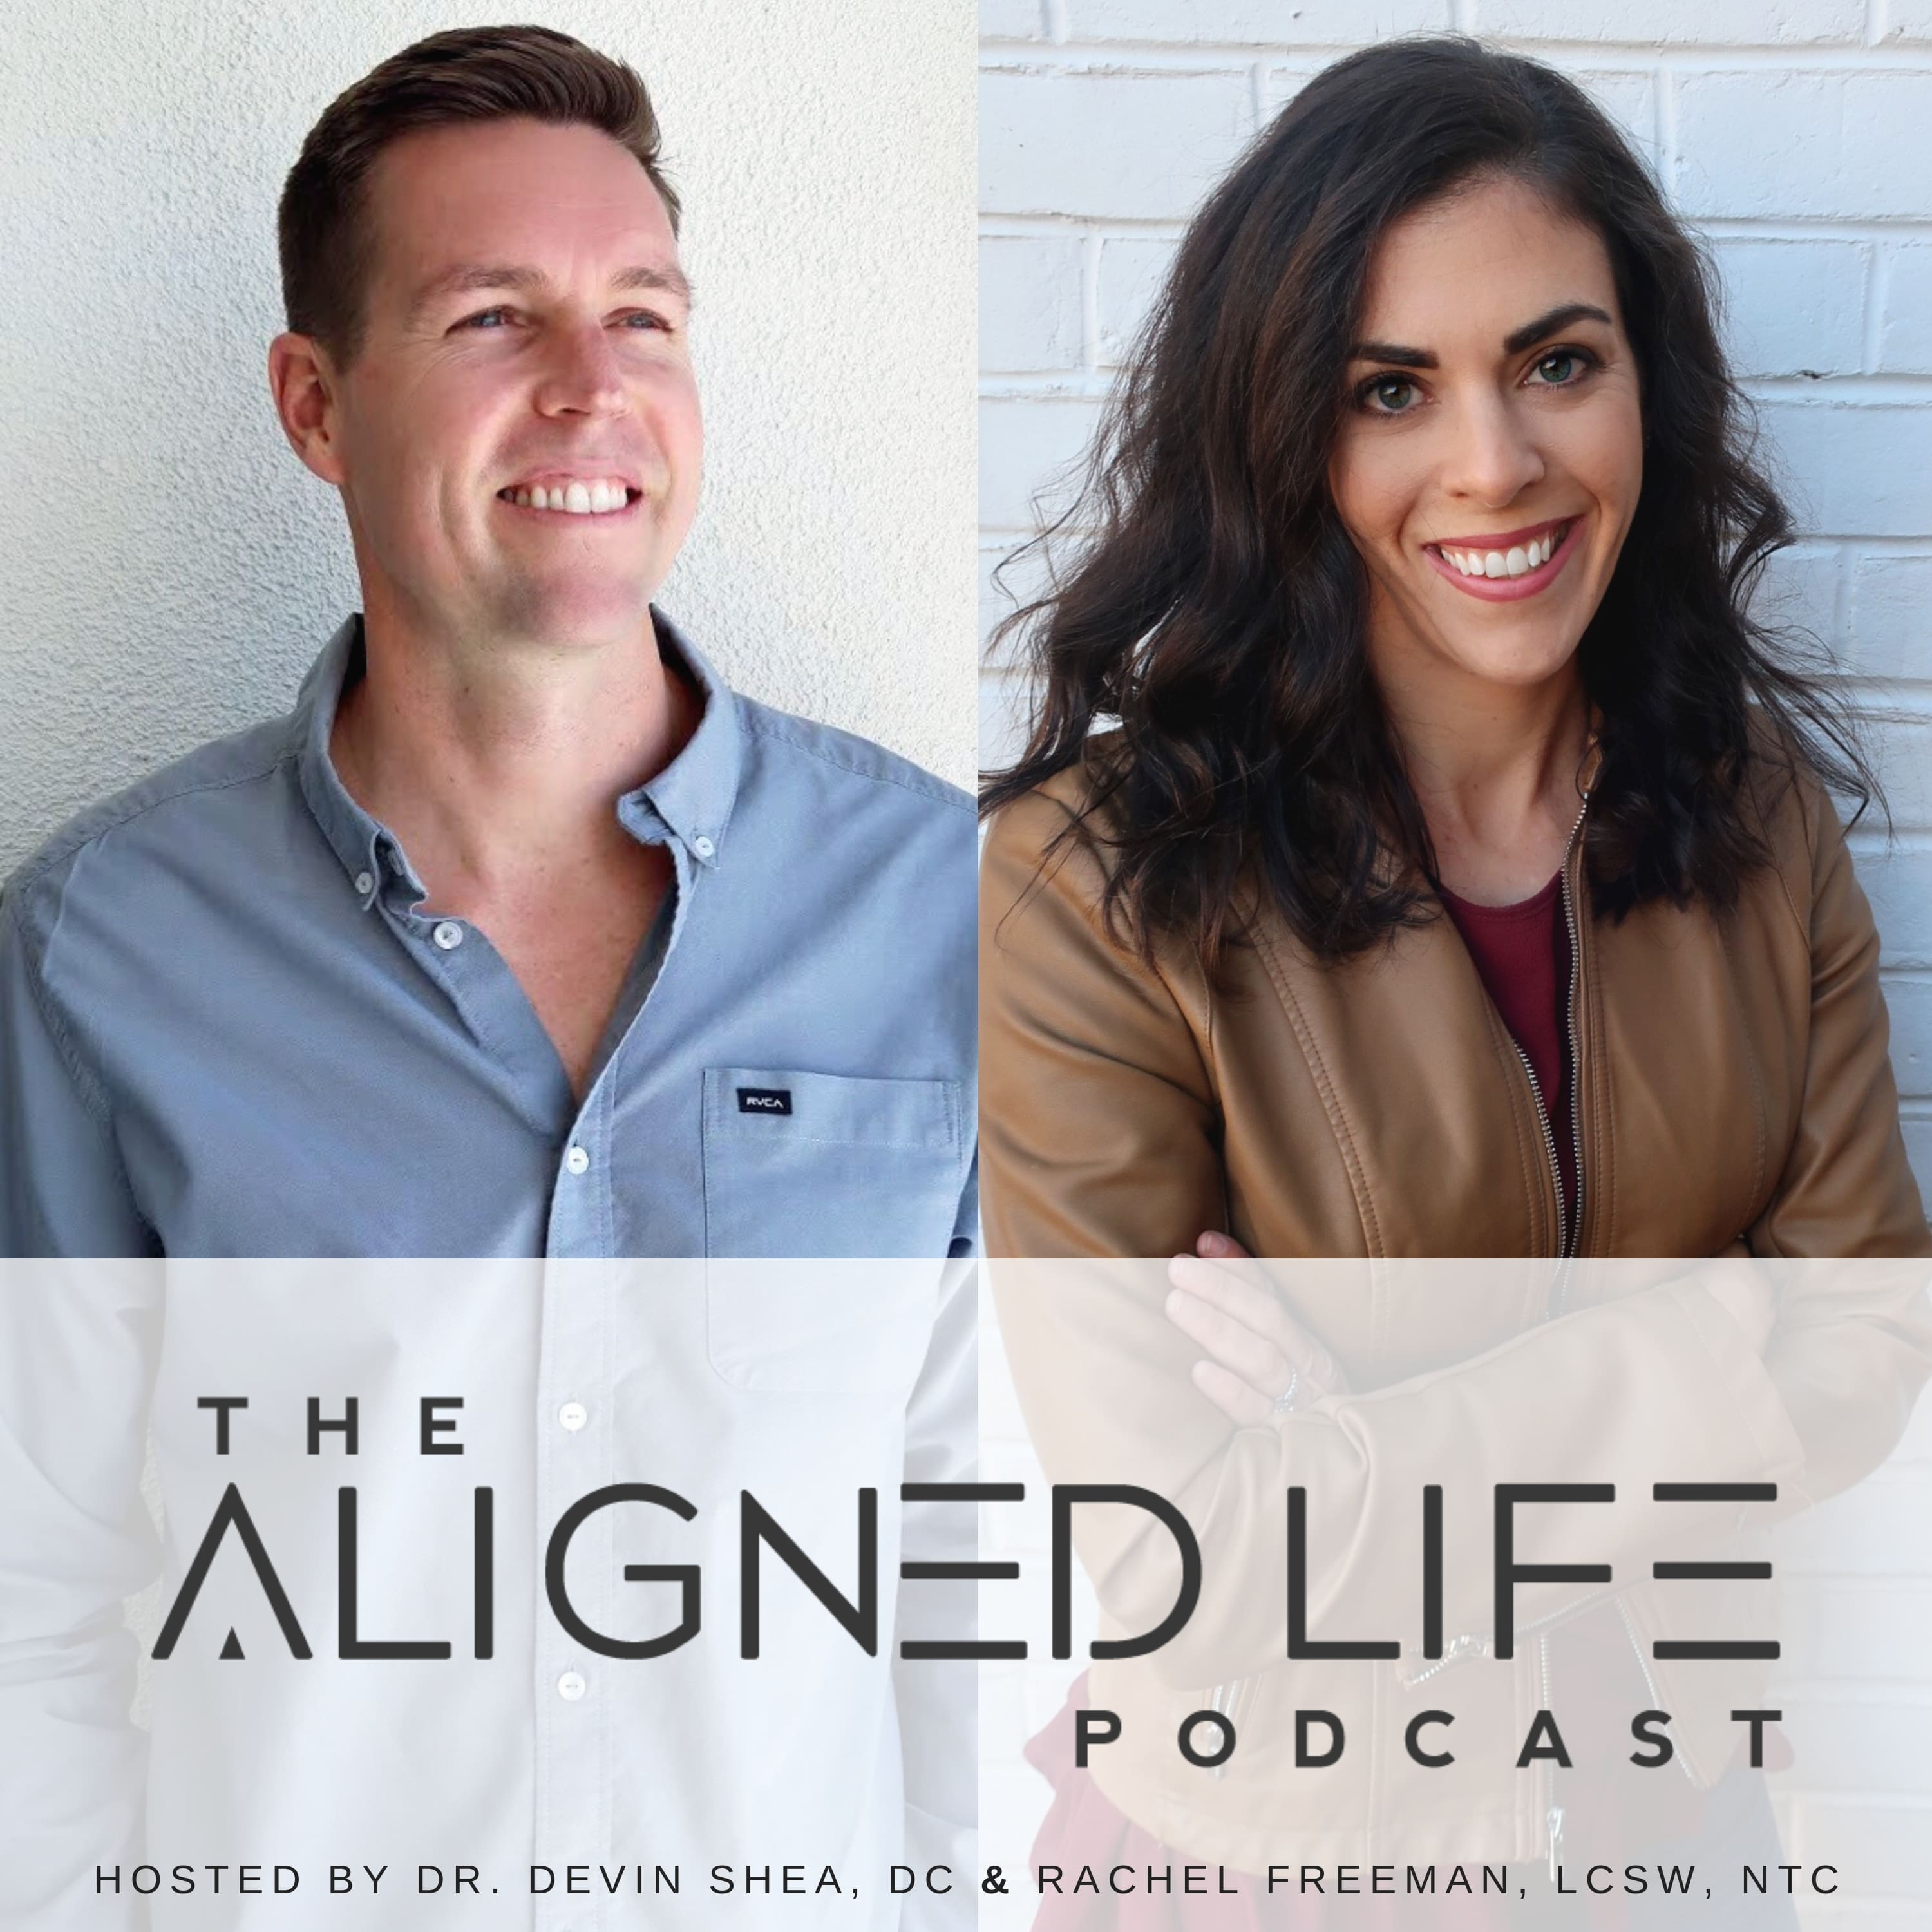 The Aligned Life Podcast: Take Control of Your Health show art